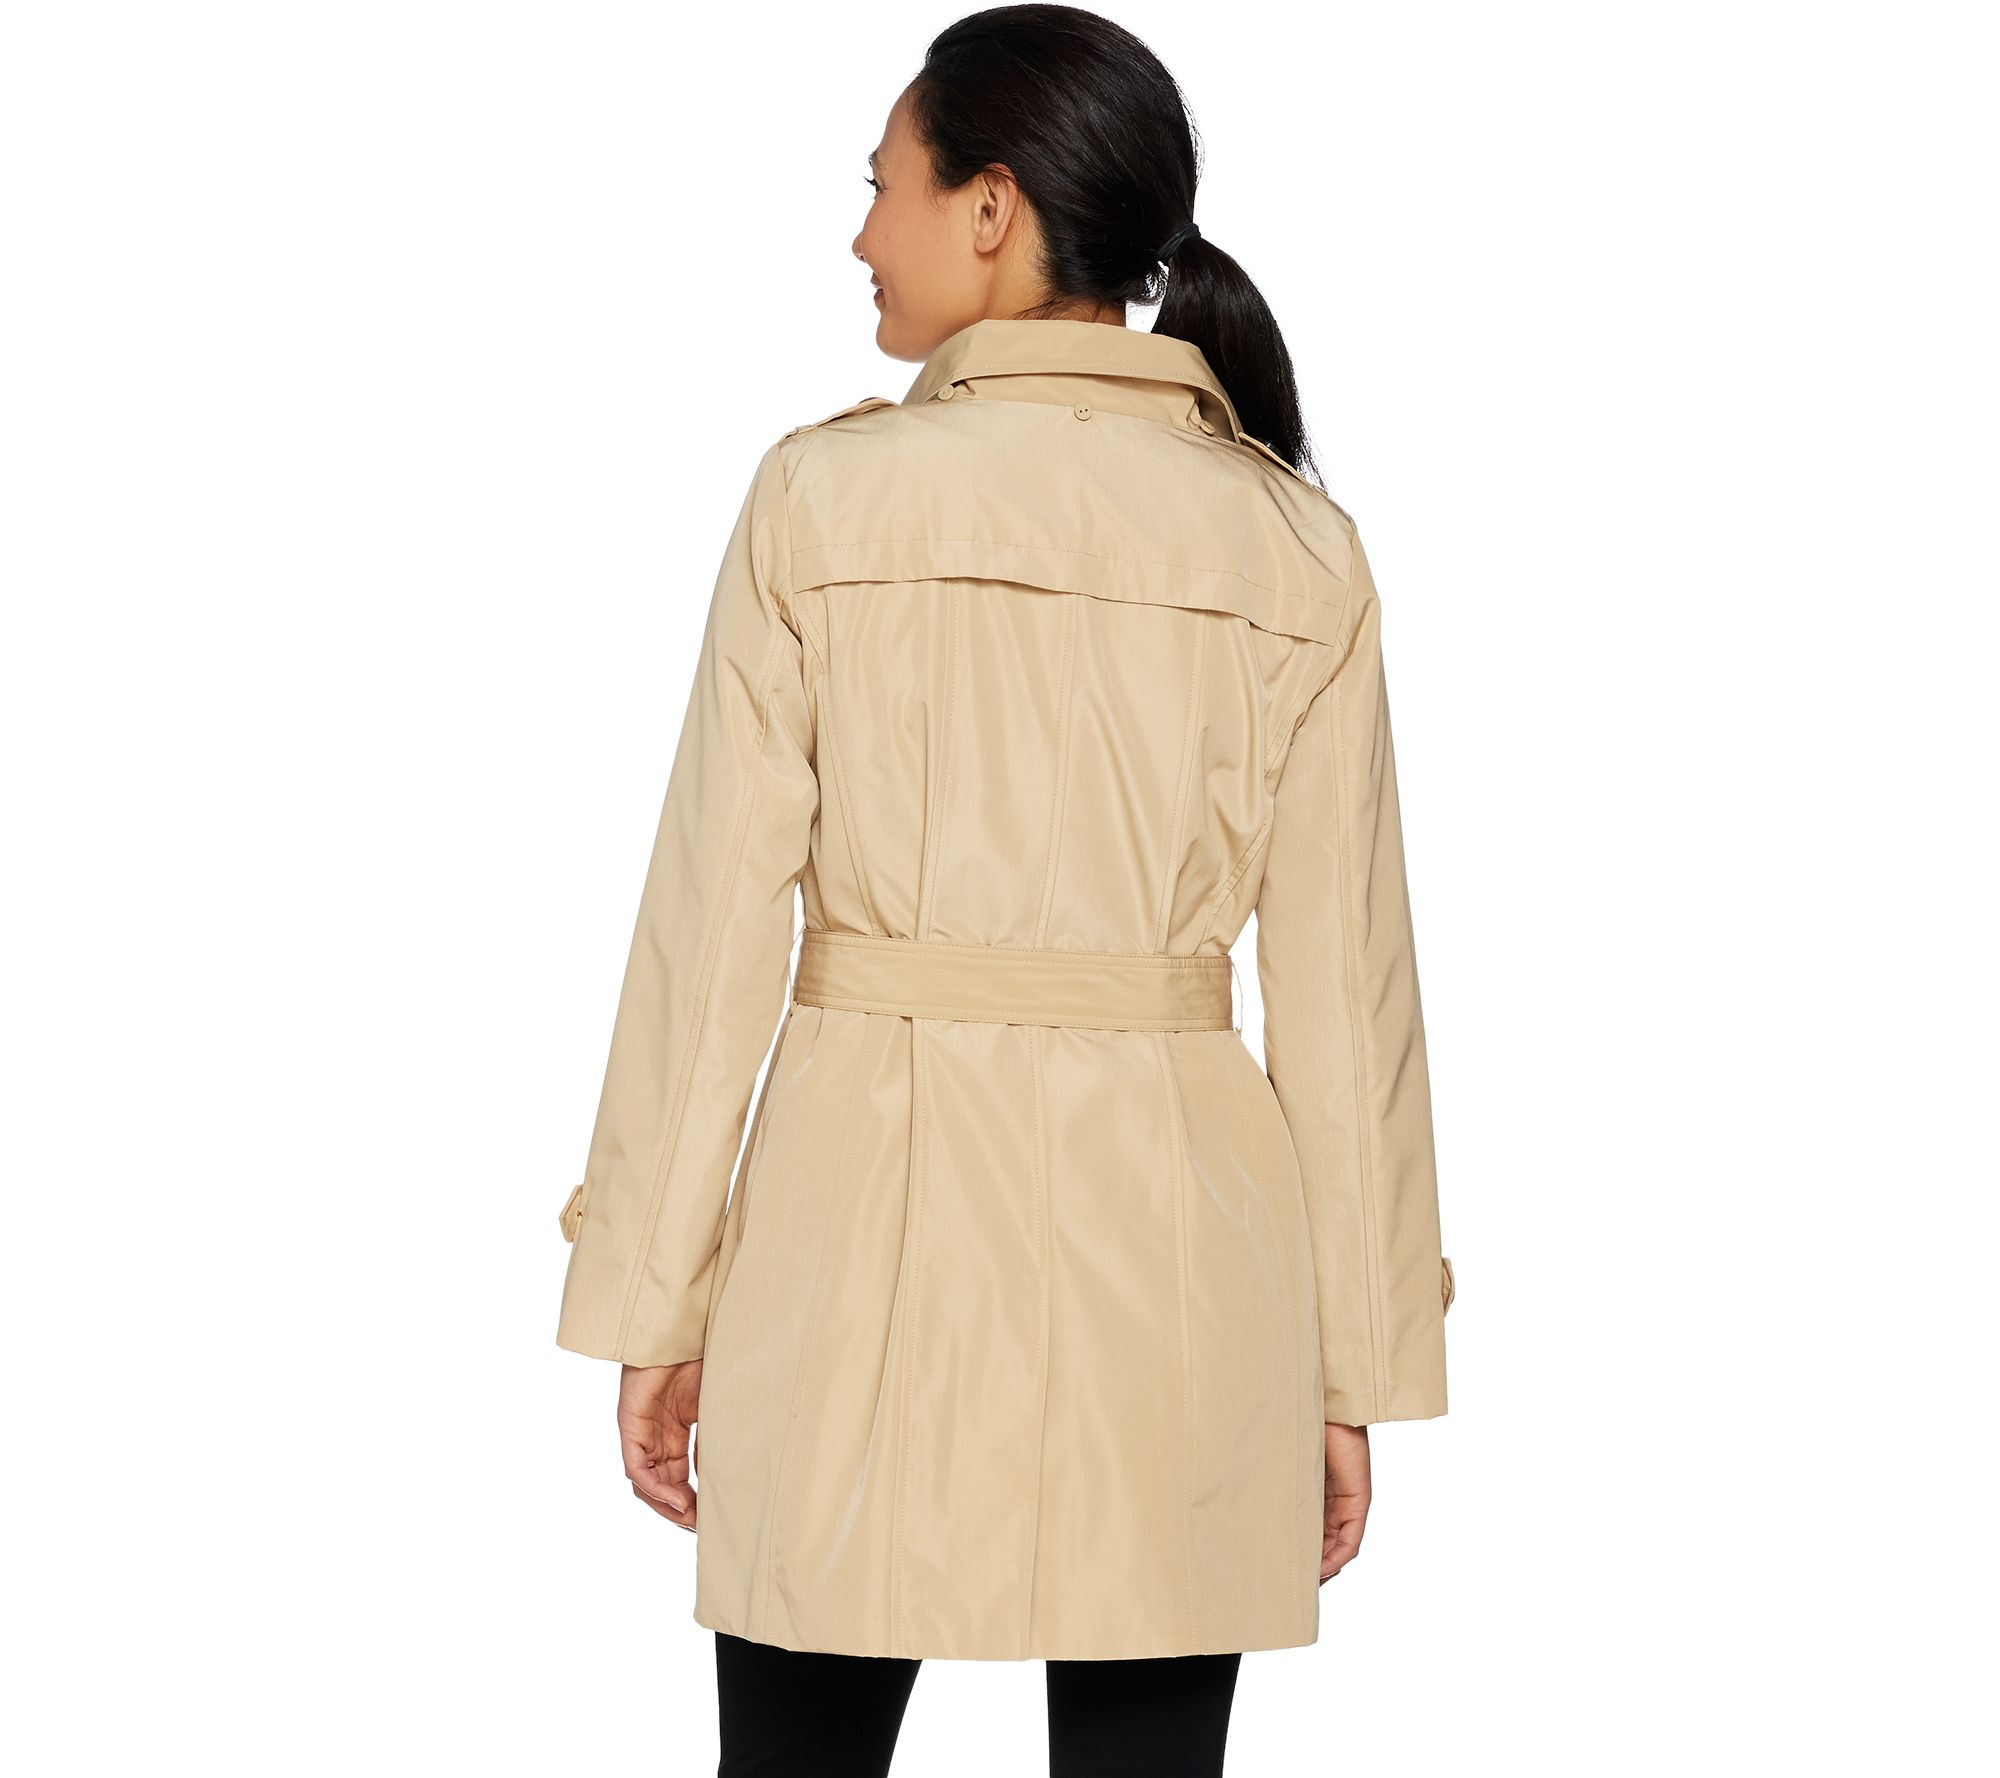 c21372609 Joan Rivers Water Resistant Trench Coat w/ Removable Hood - Page 1 — QVC.com